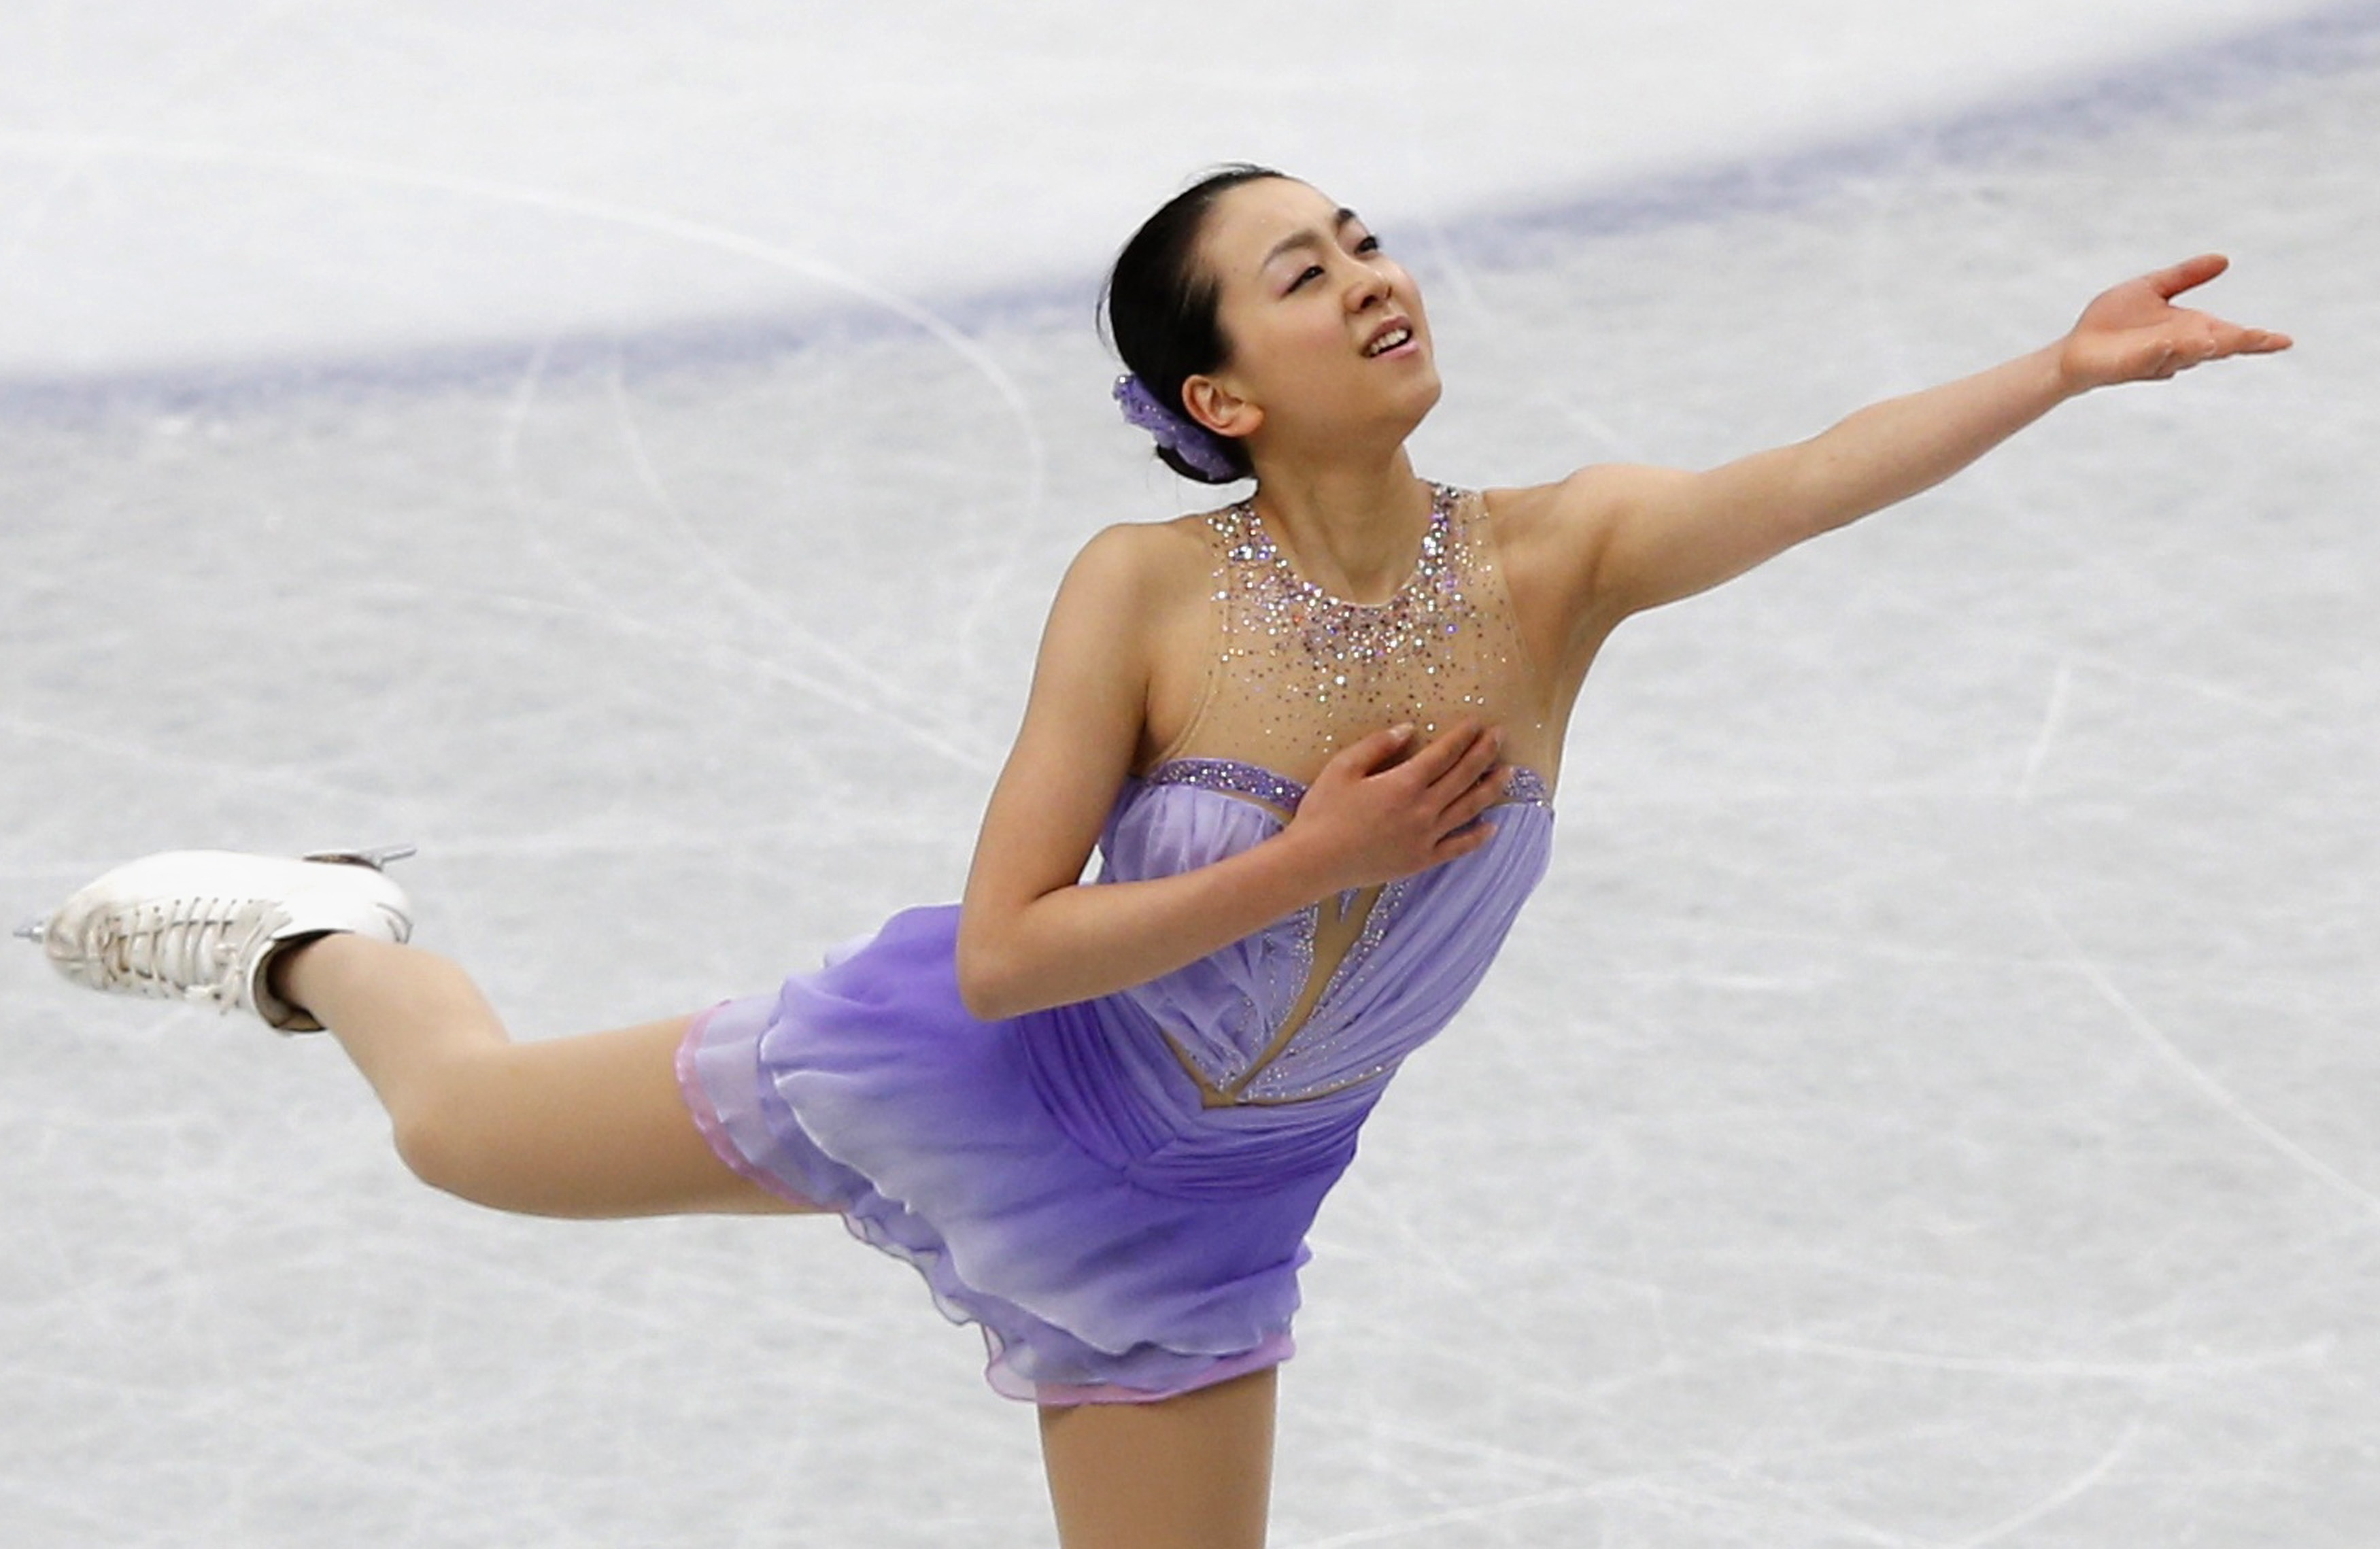 Flawless Mao sets new world record after short program The Japan Times